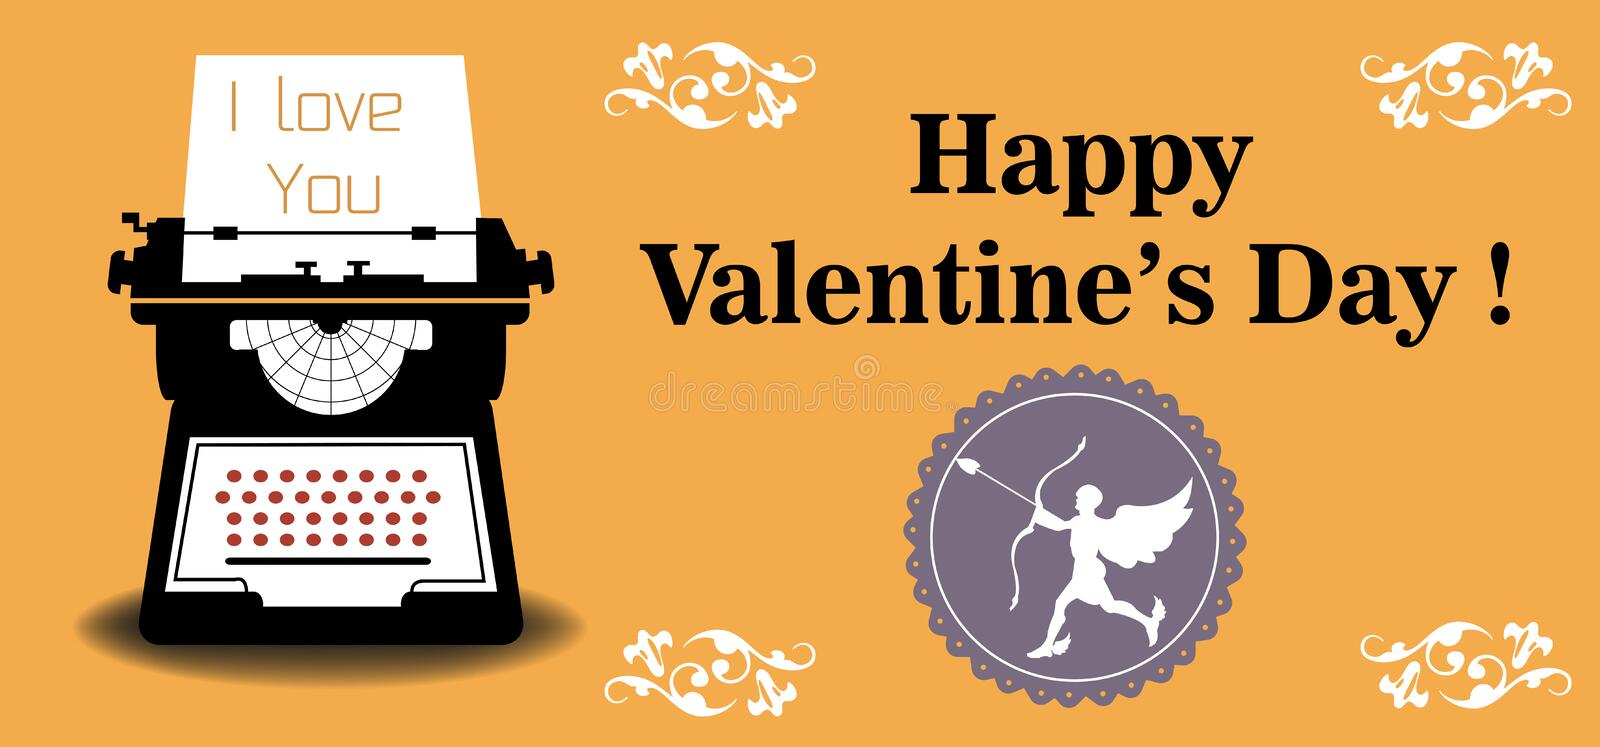 Valentine typing machine royalty free stock images